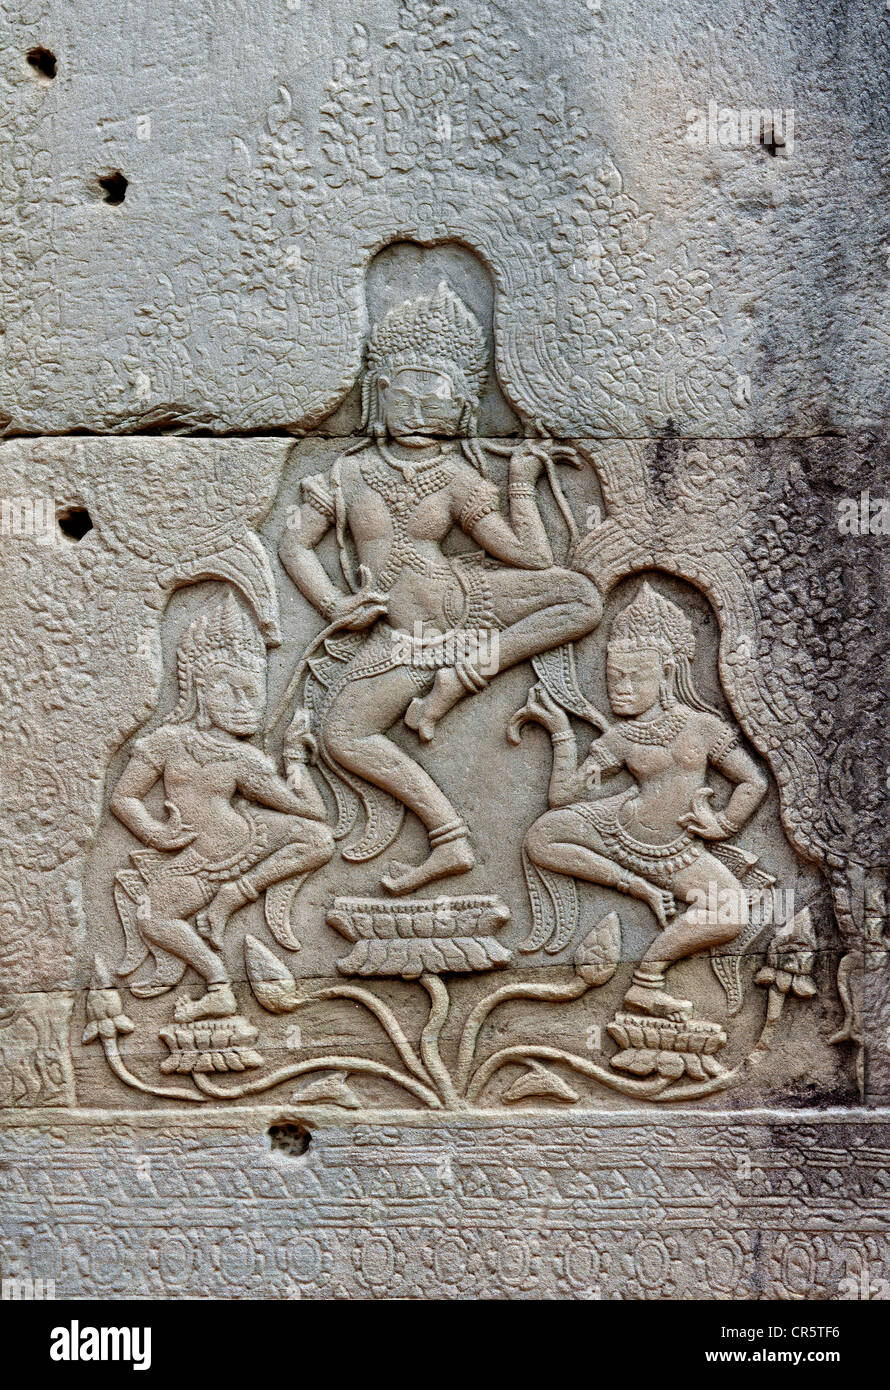 Stone bas-relief of a group of three apsaras dancing on lotuses, Bayon Temple, Angkor Thom, Siem Reap, Cambodia, - Stock Image